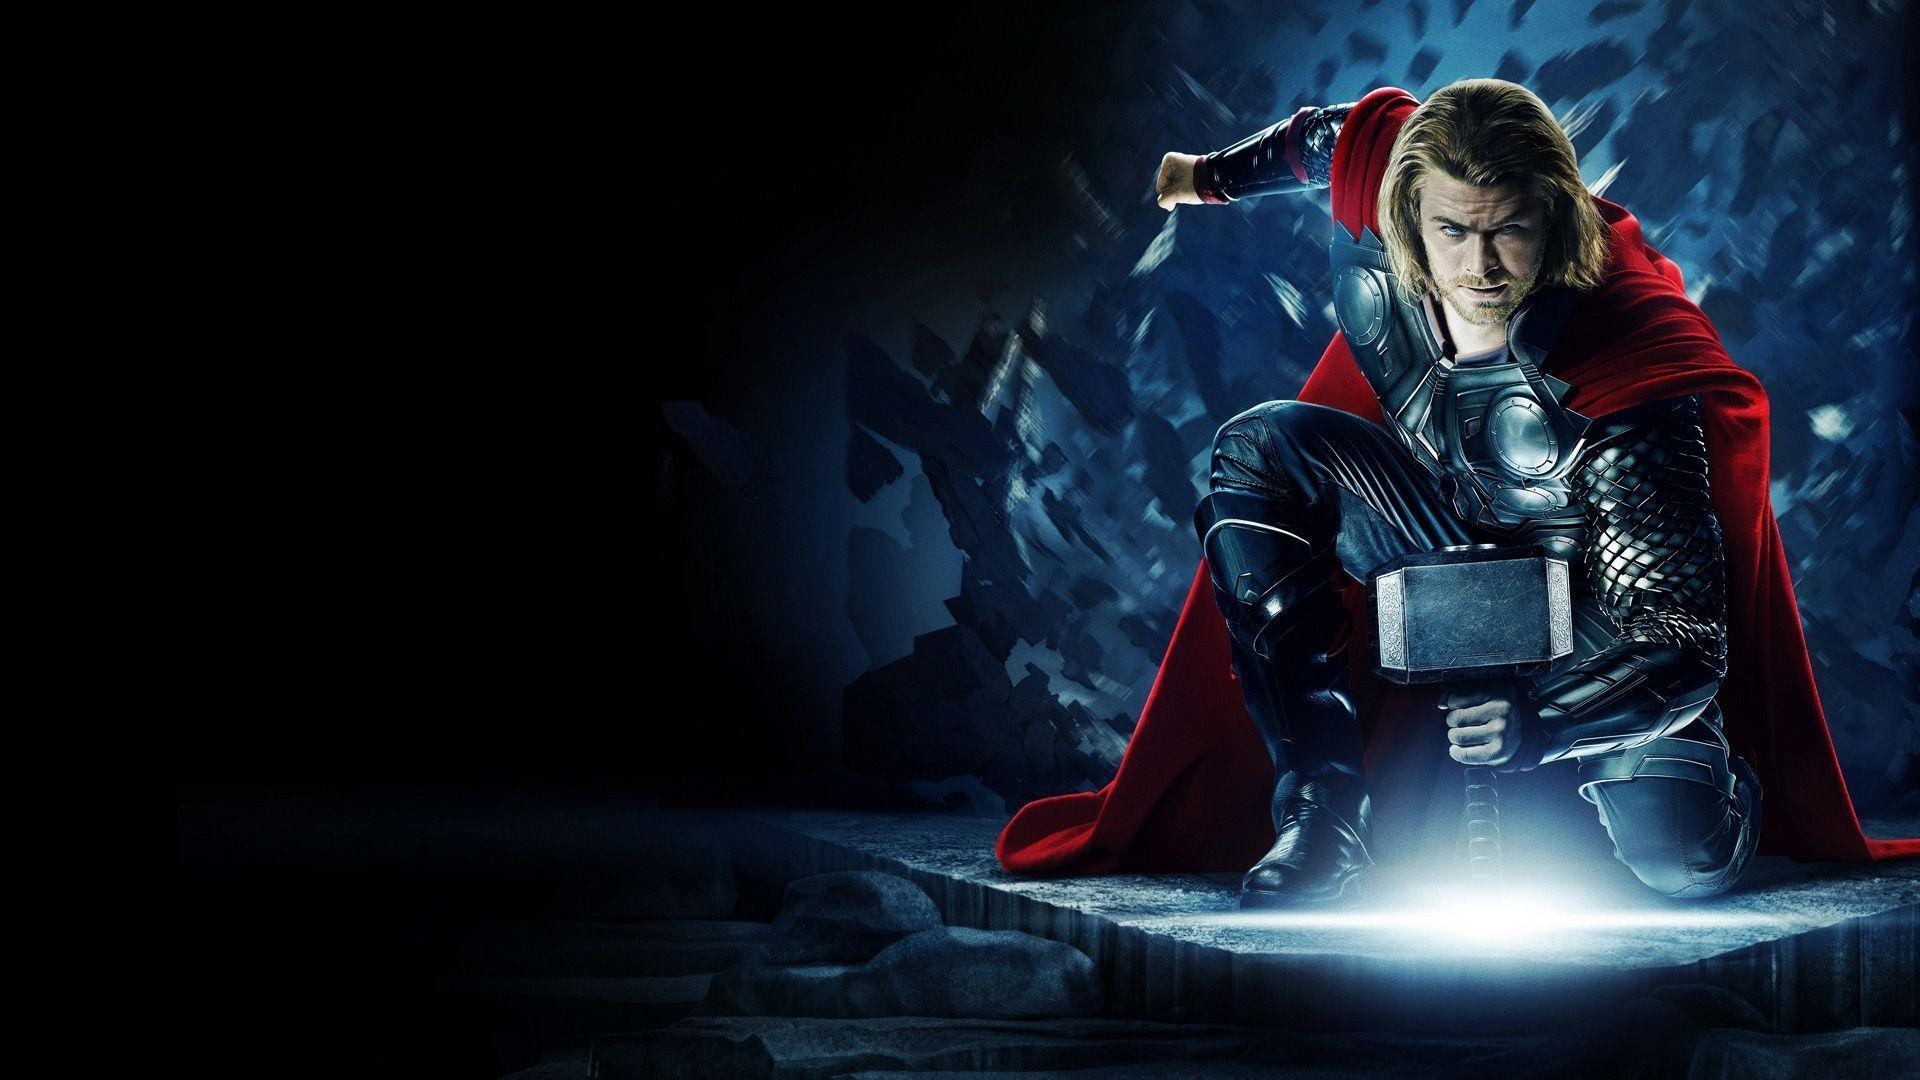 Thor wallpapers, Movie, HQ Thor pictures